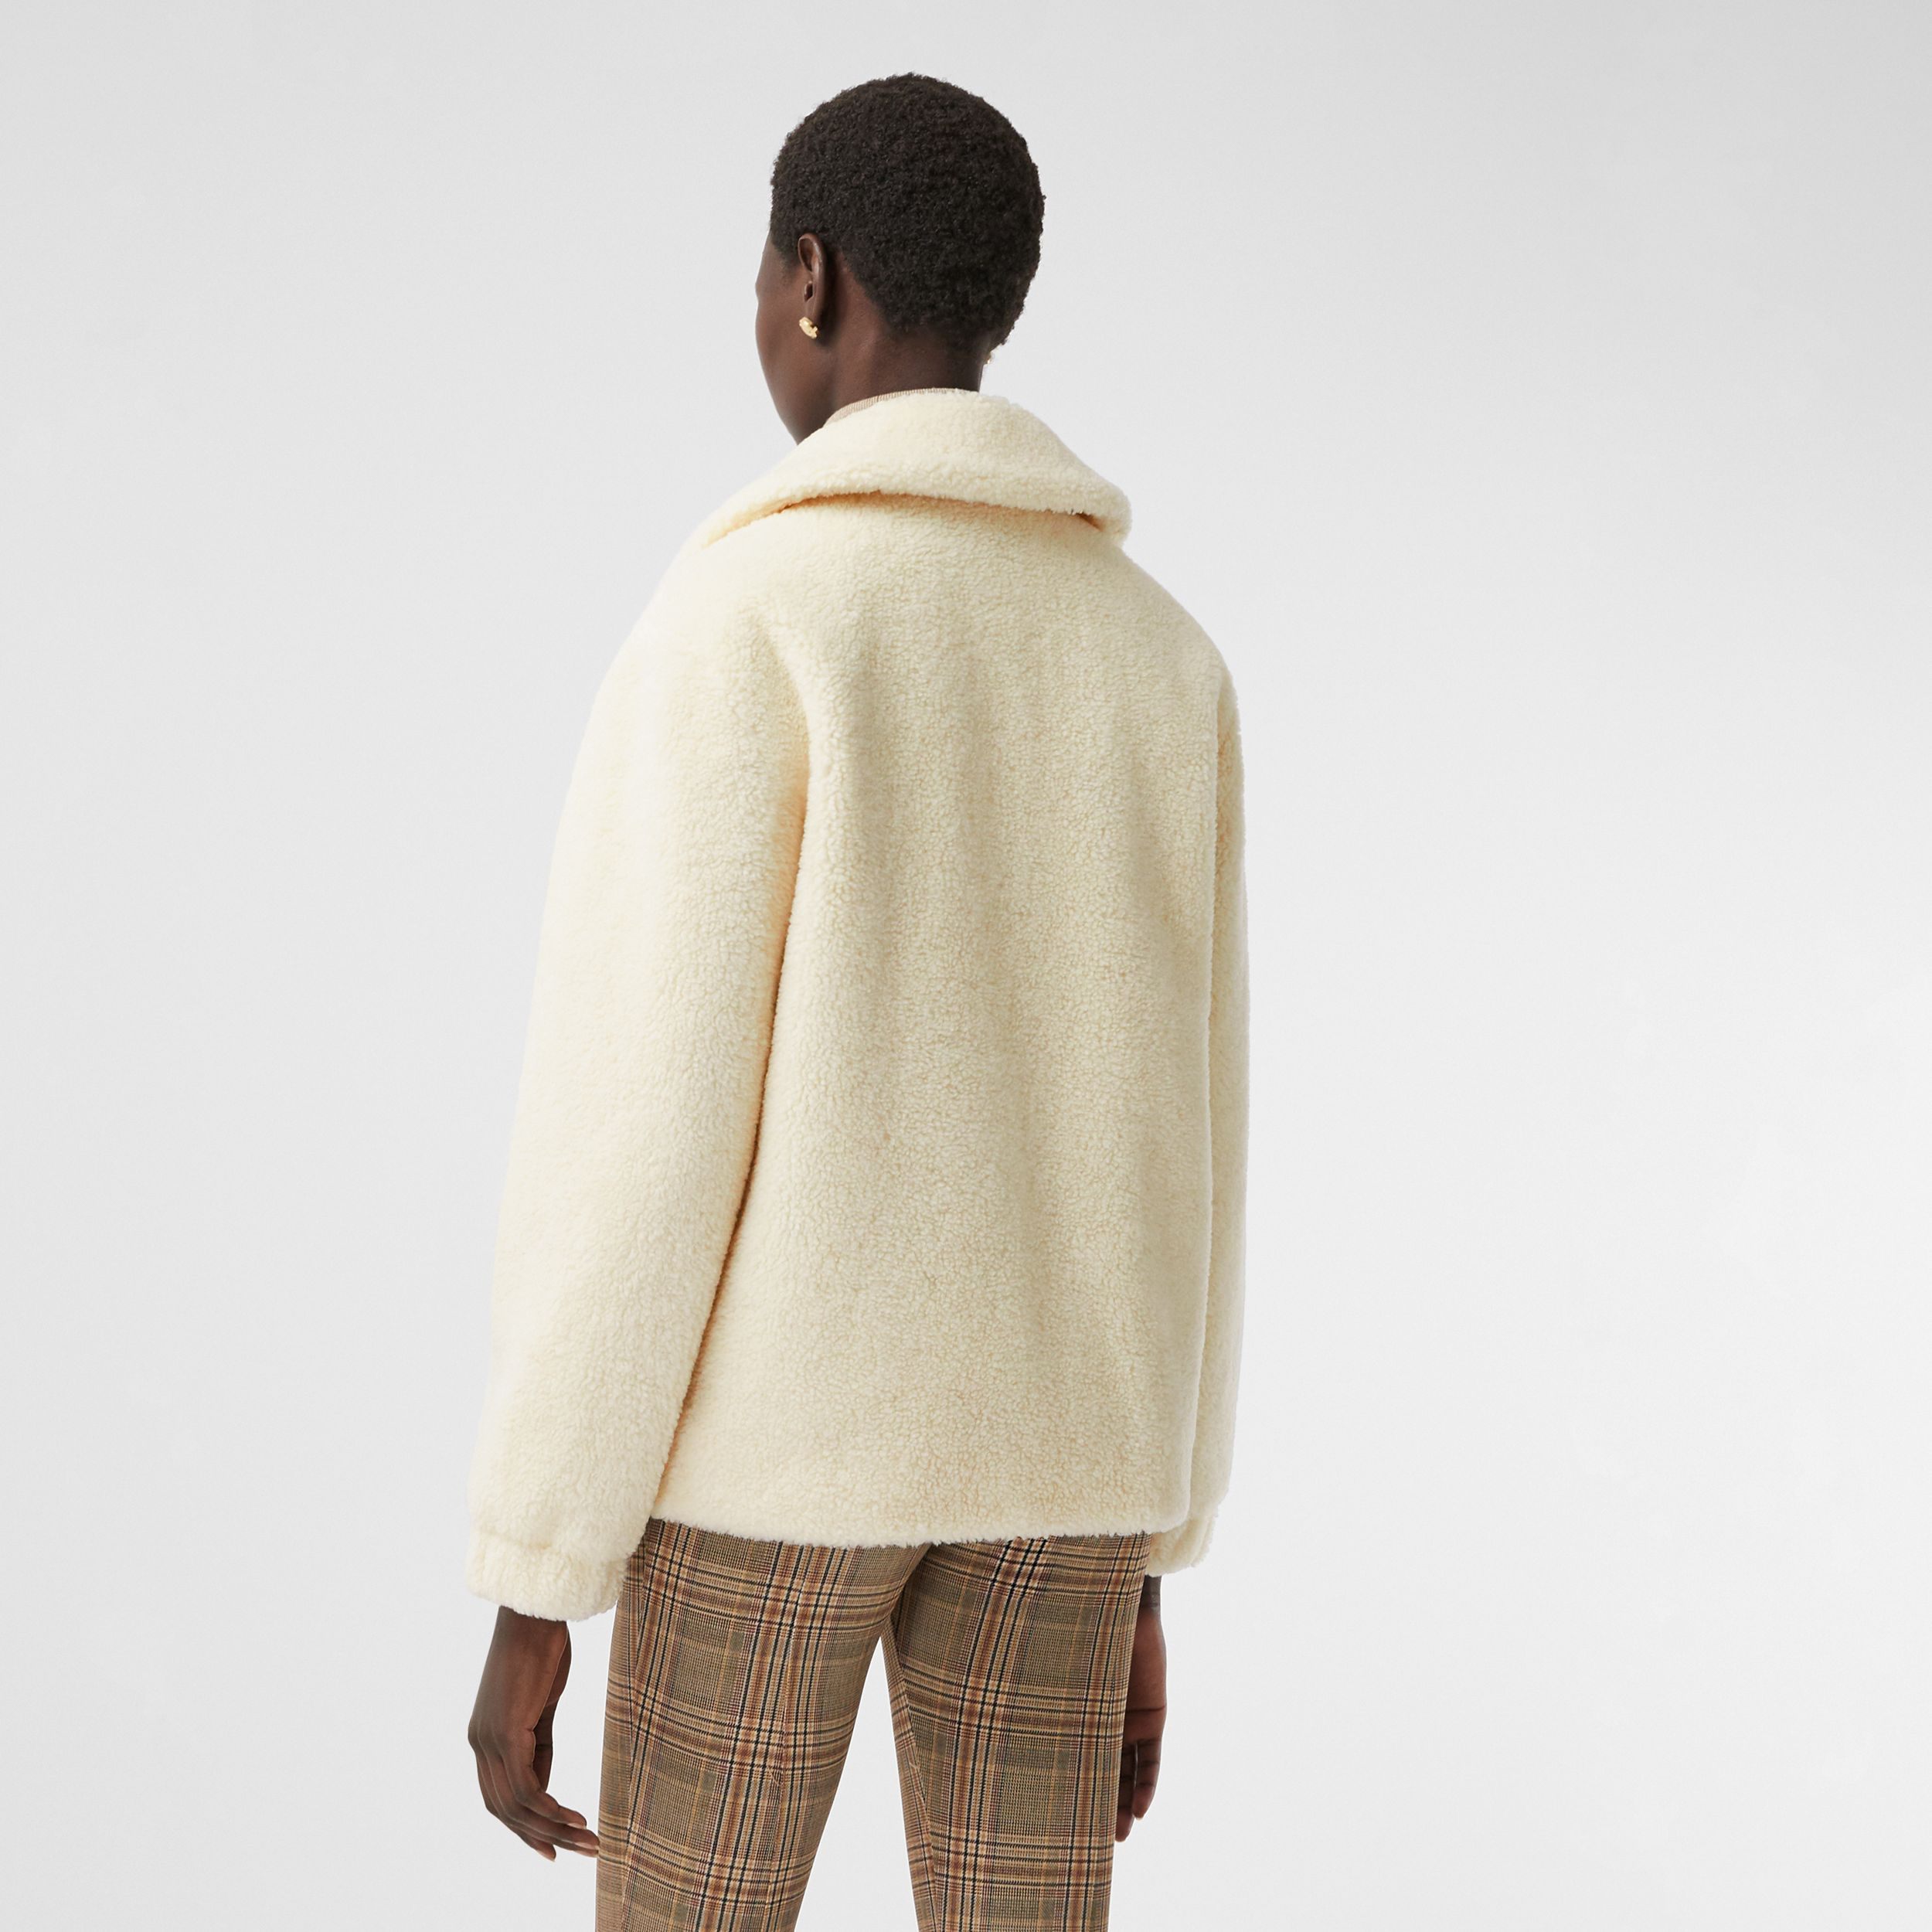 Monogram Motif Fleece Jacket in Ivory - Women | Burberry Hong Kong S.A.R. - 2